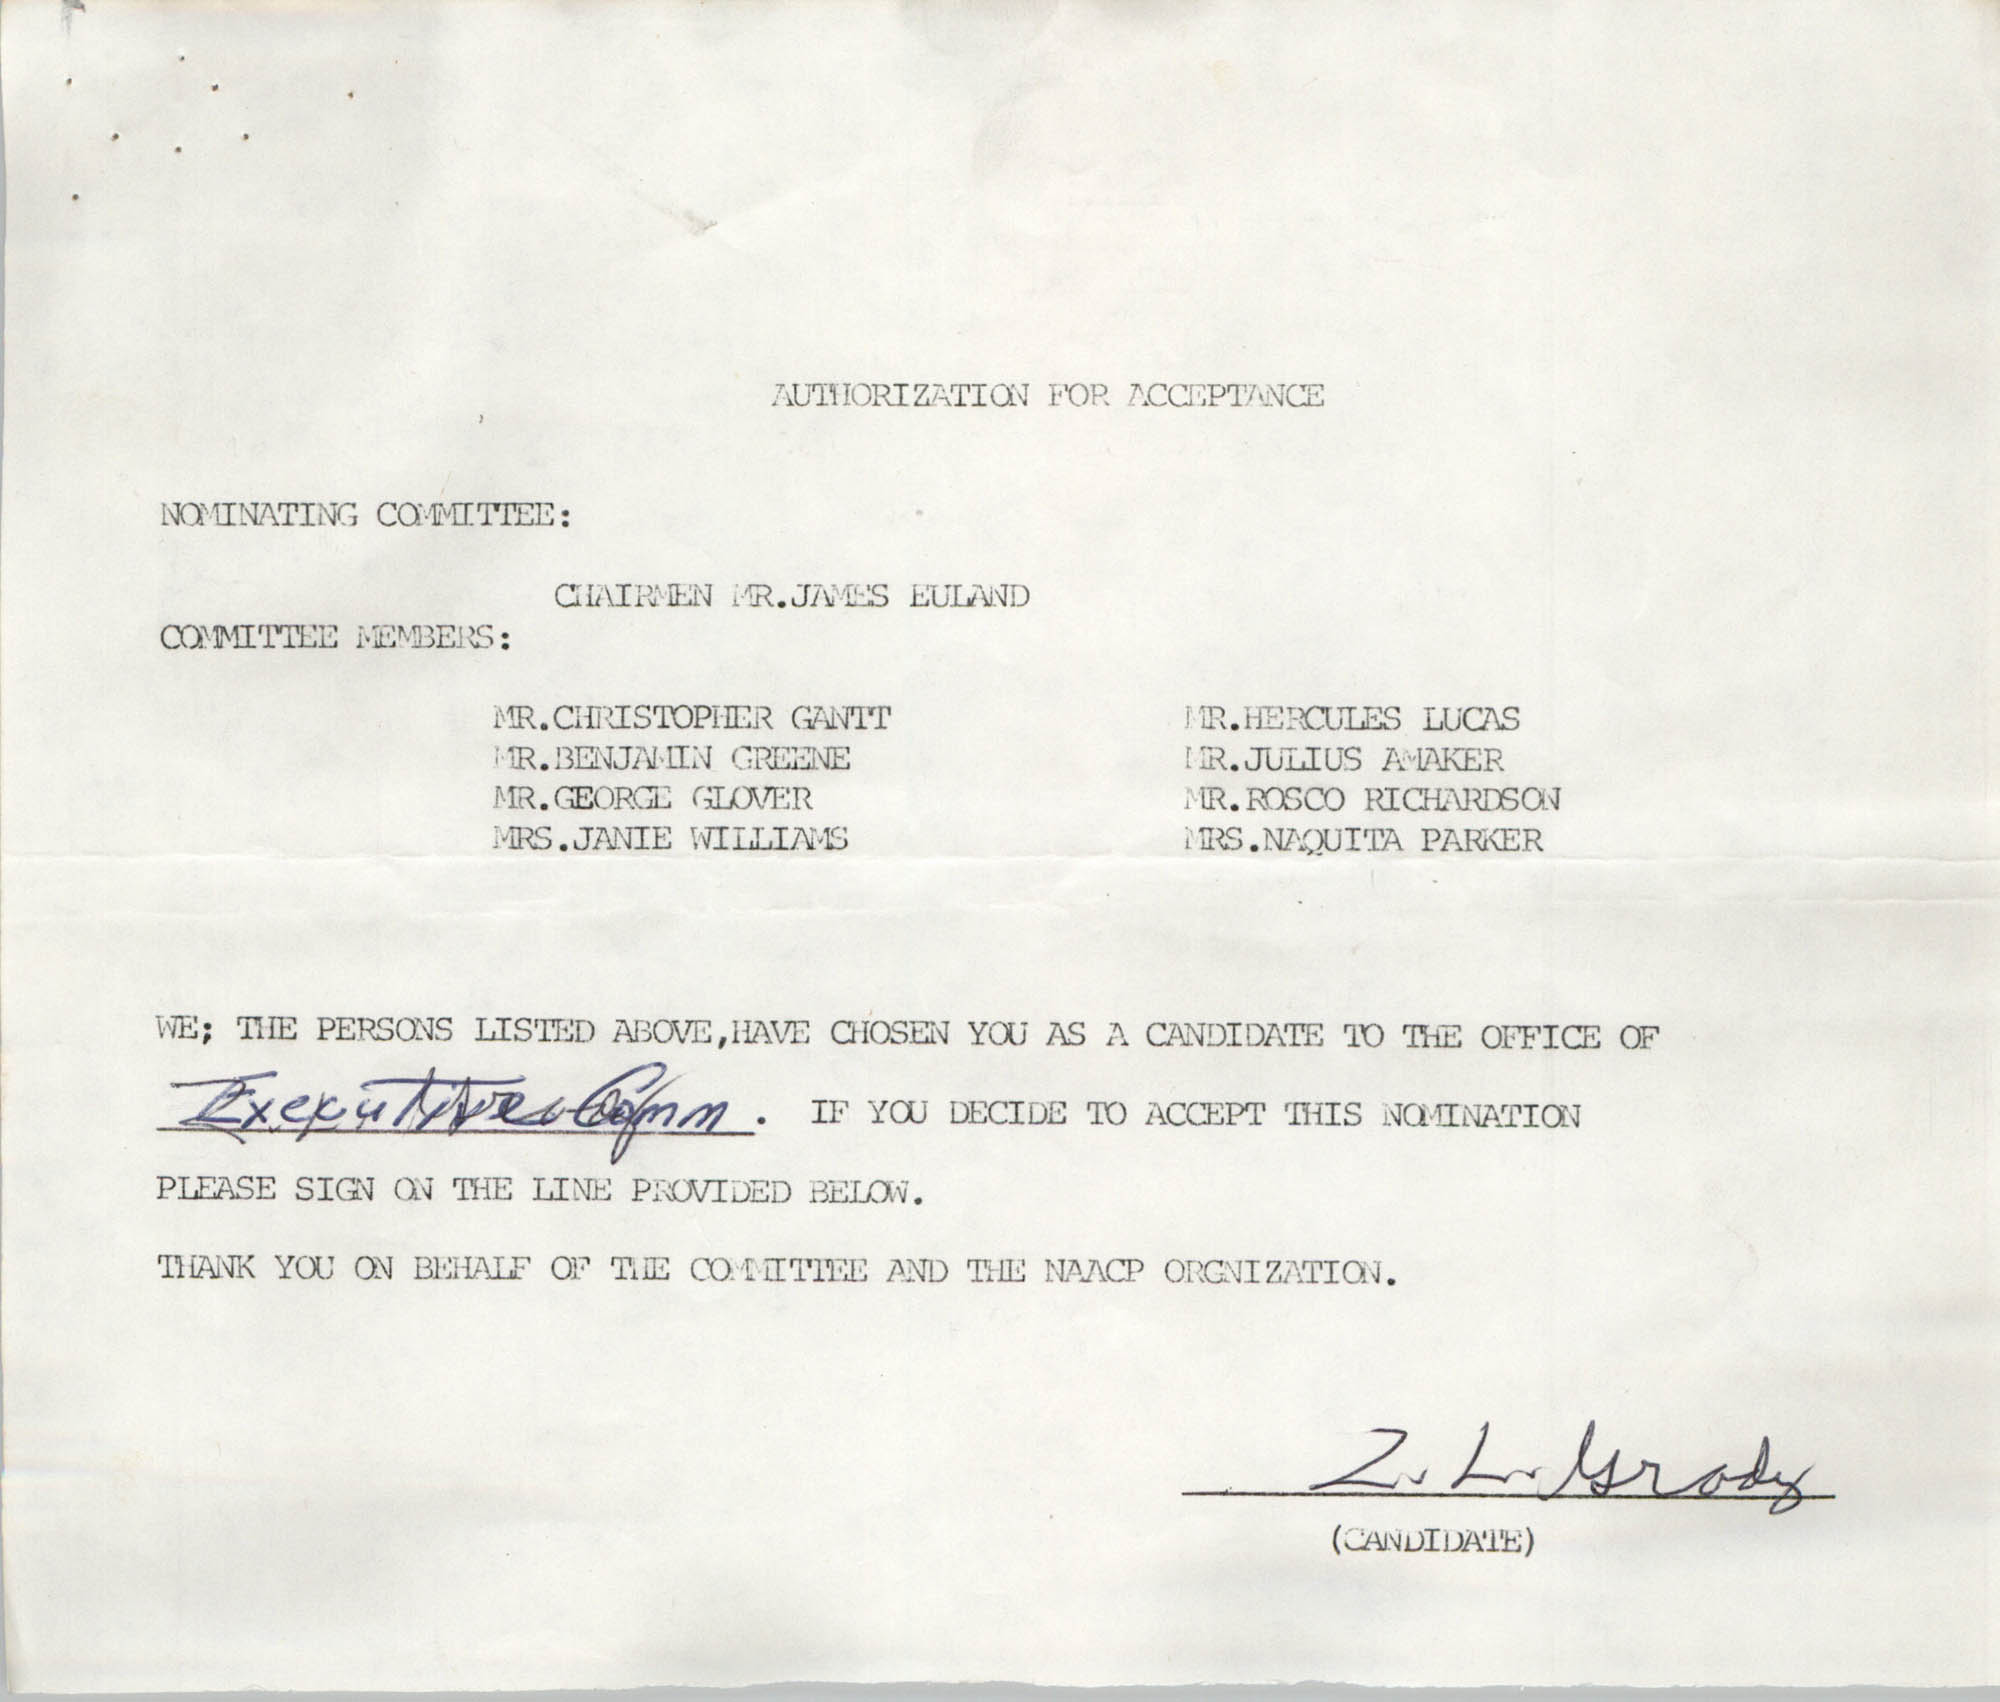 Charleston Branch of the NAACP Election Materials, Authorization for Acceptance for Z. L. Grady